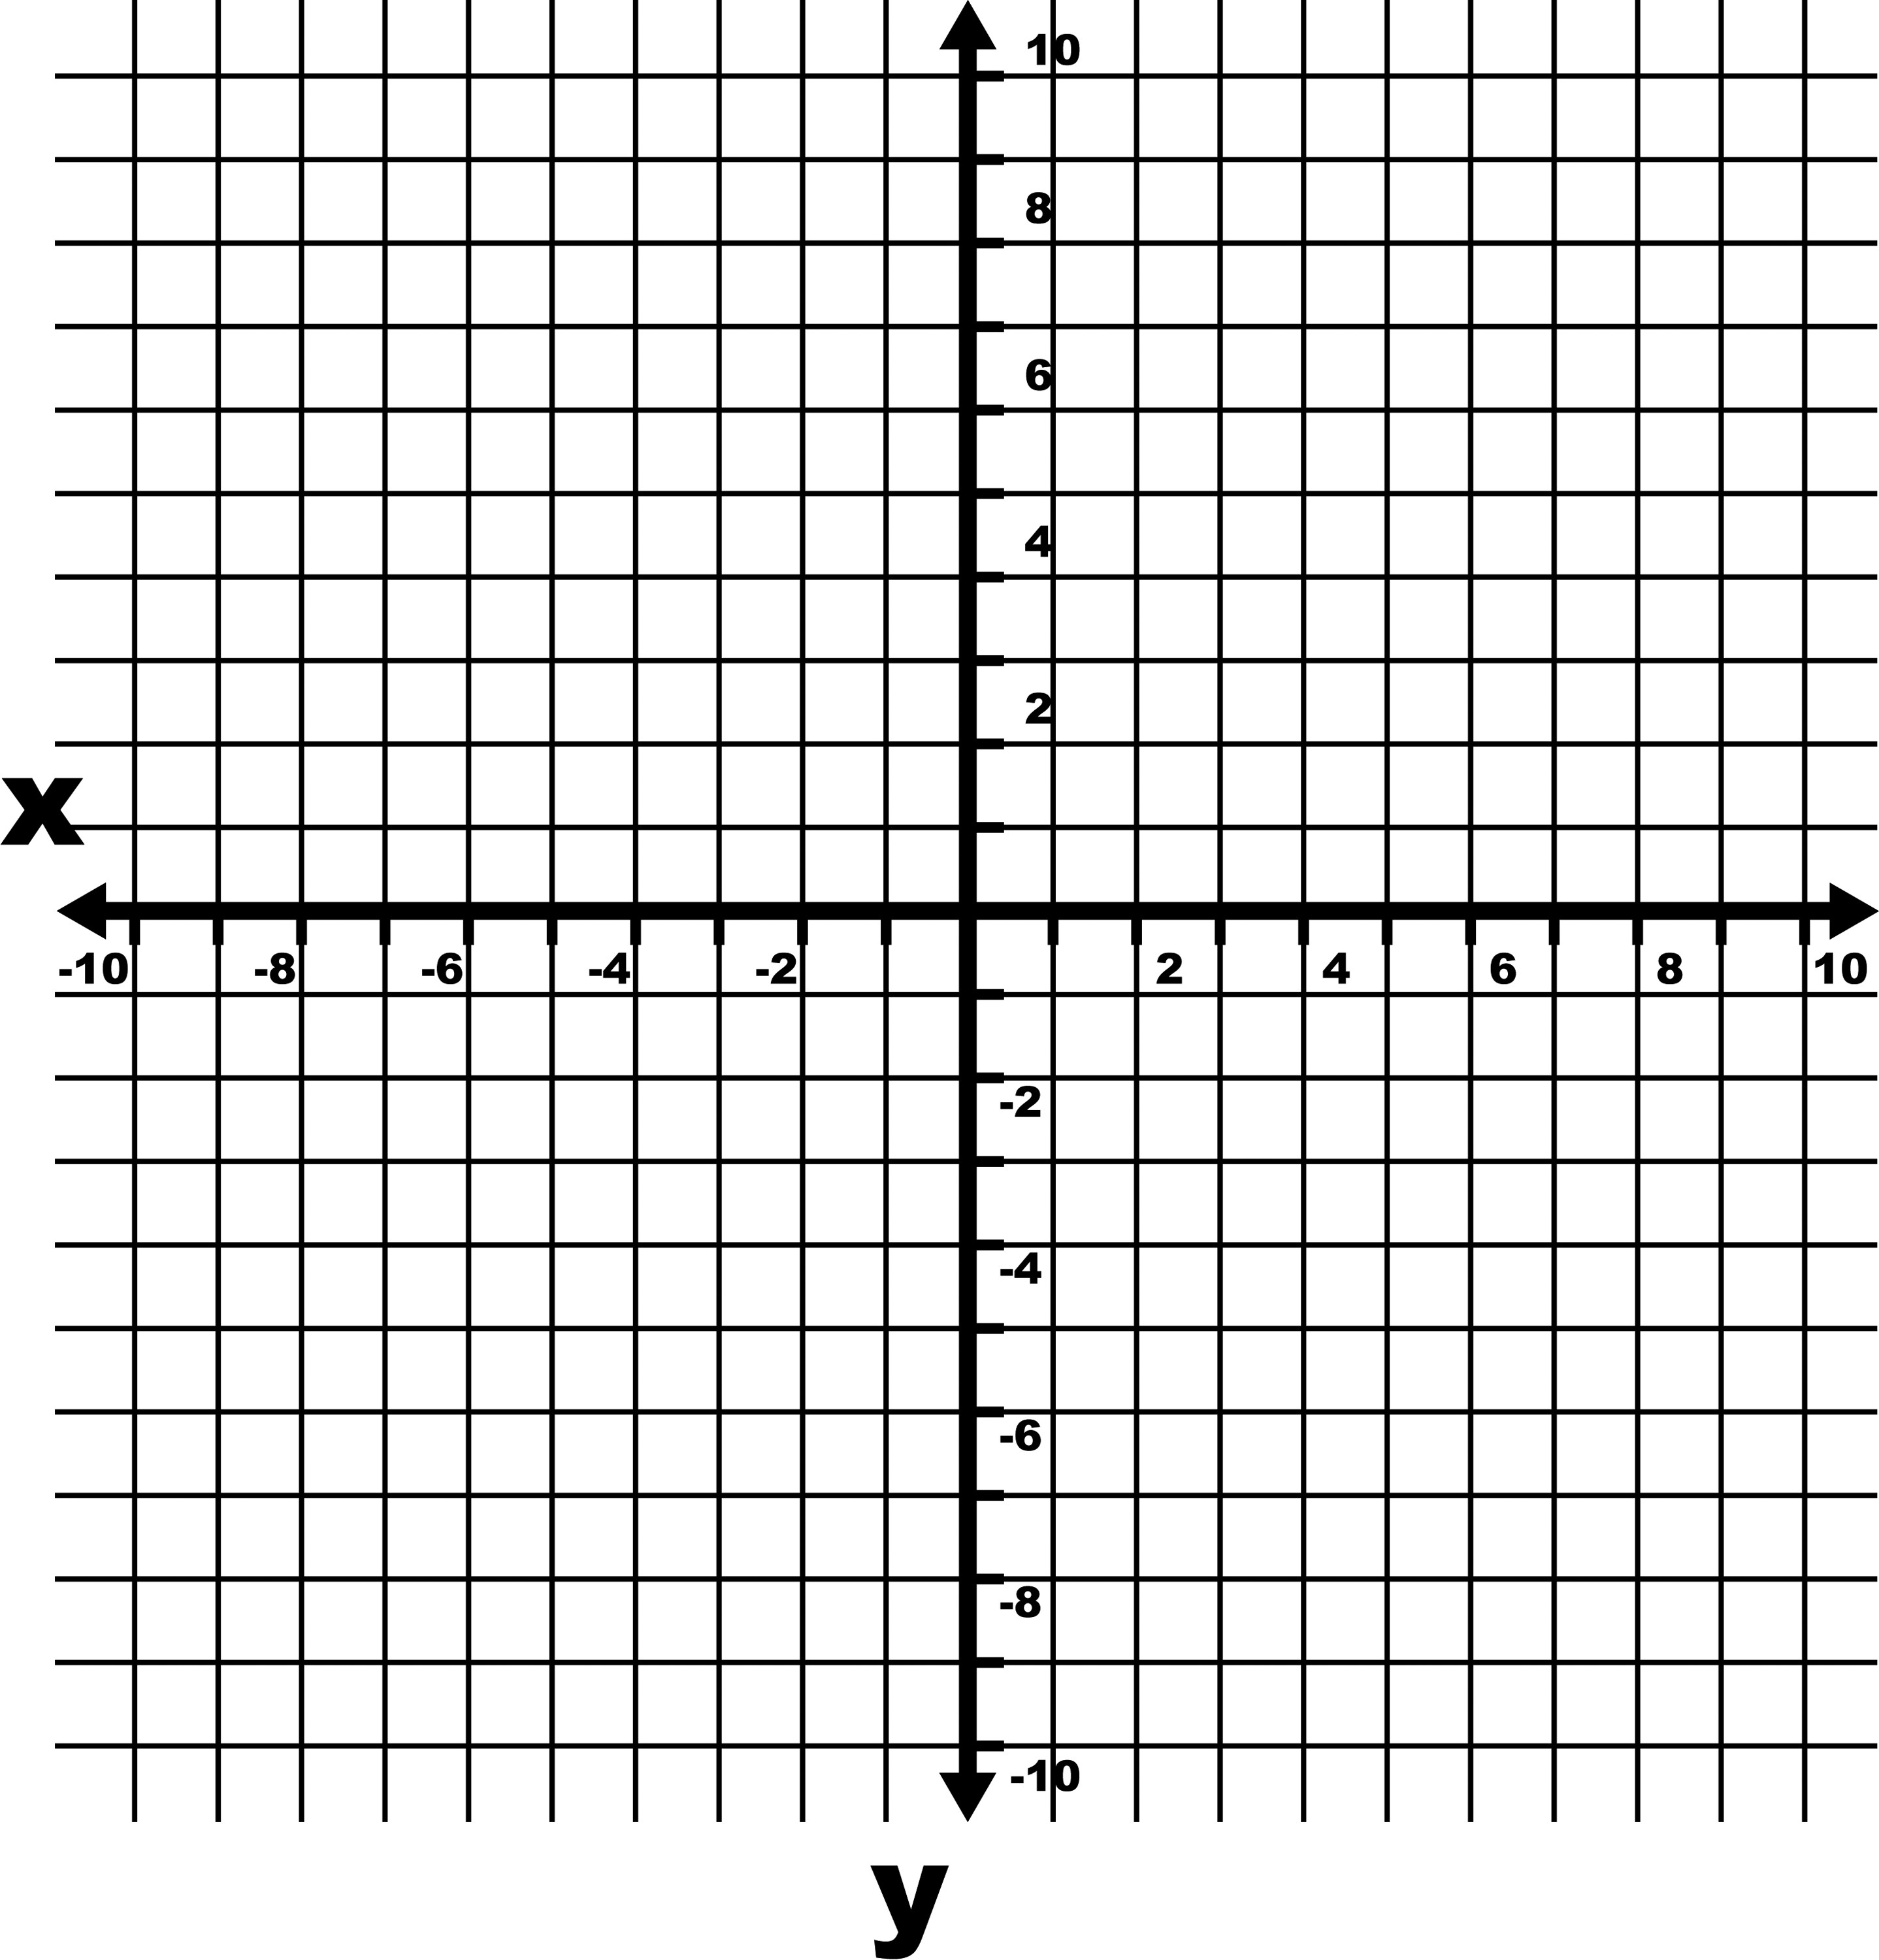 -10 To 10 Coordinate Grid With Axes And Even Increments